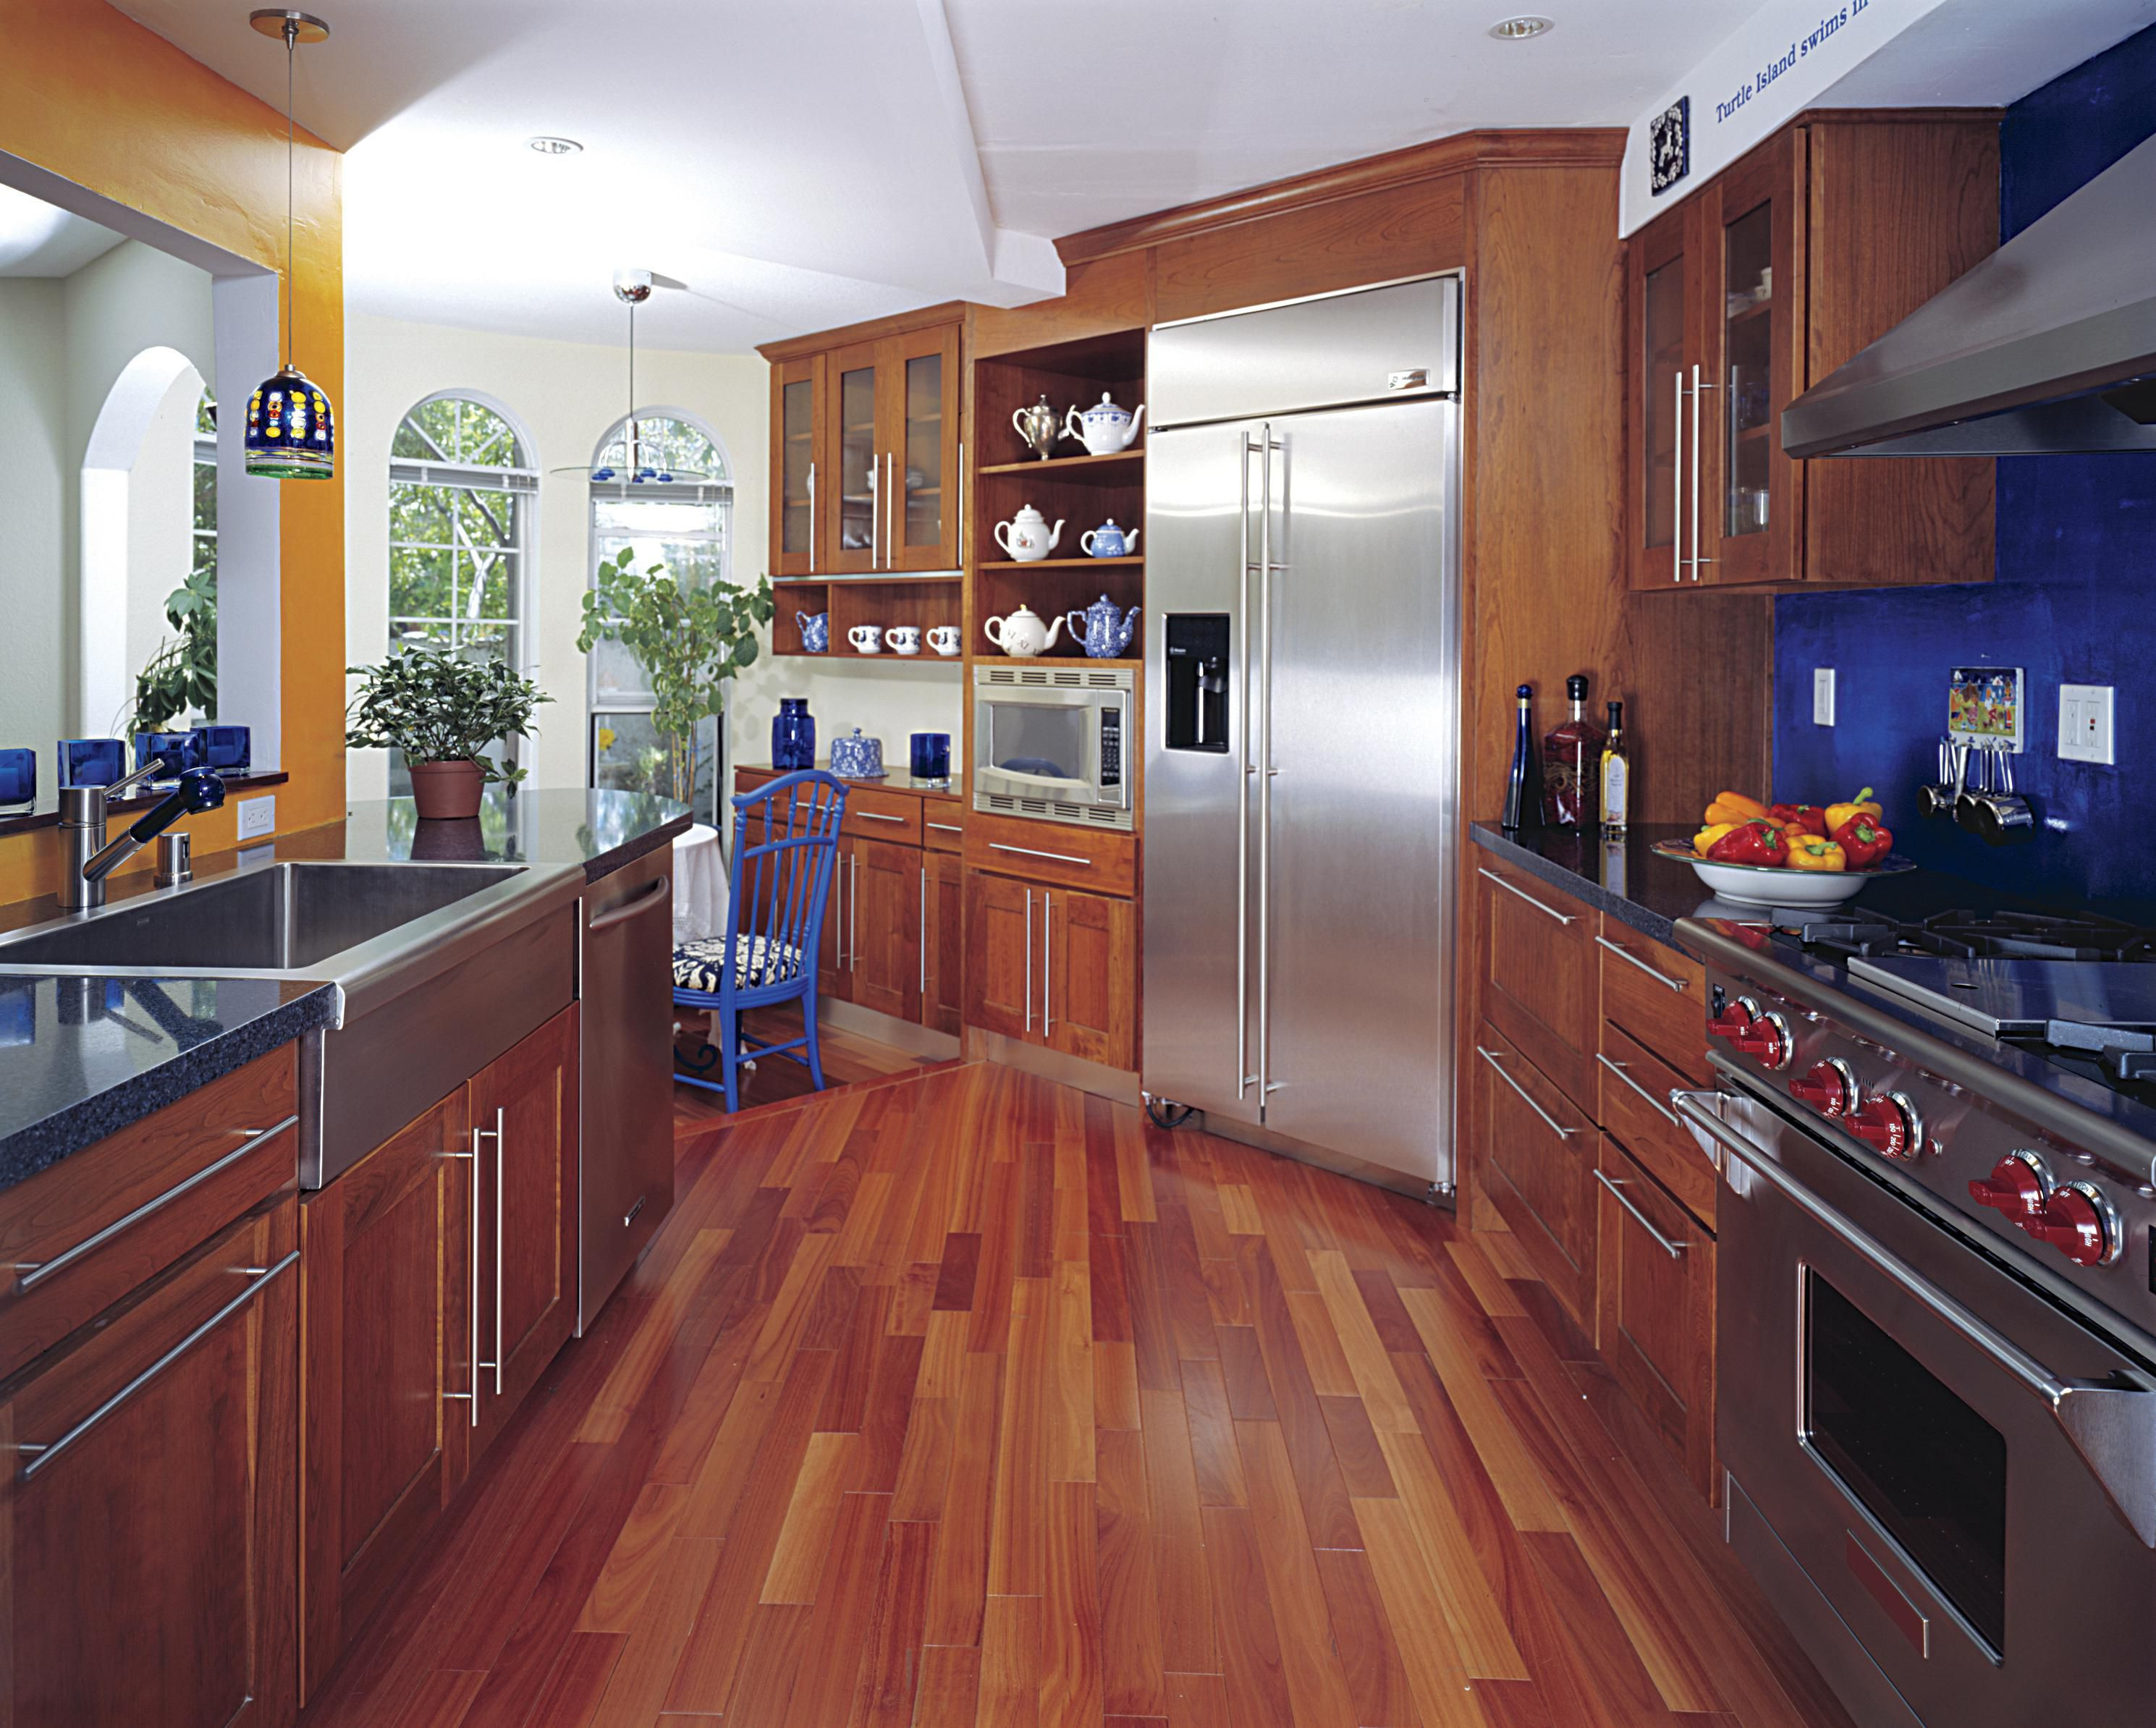 can i put hardwood floor over tile of hardwood floor in a kitchen is this allowed intended for 186828472 56a49f3a5f9b58b7d0d7e142